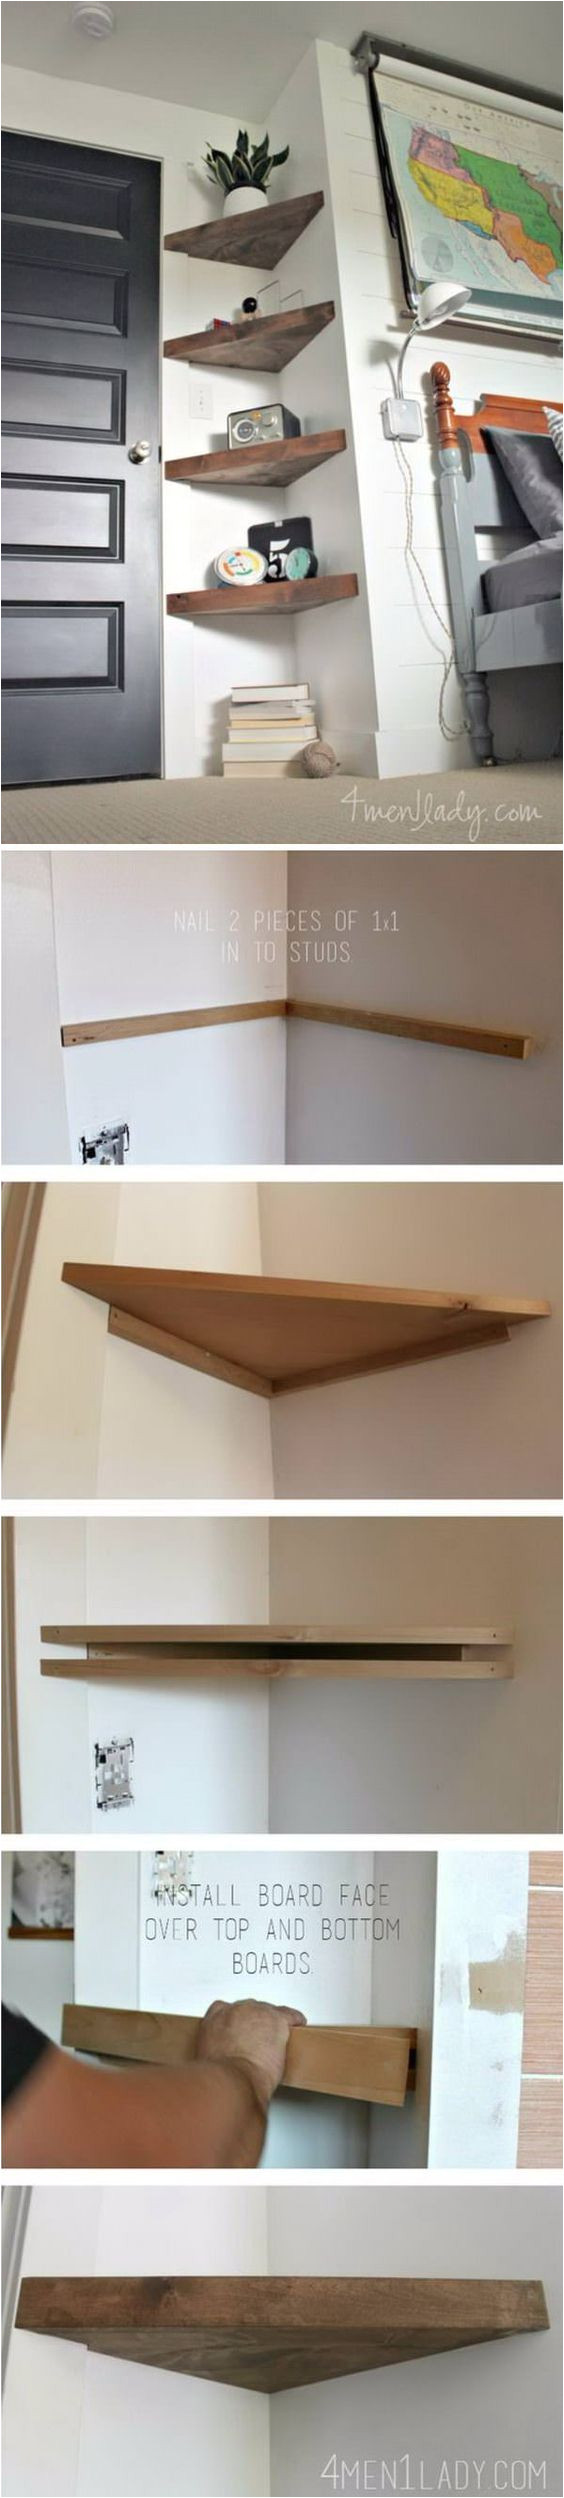 20 diy corner shelves to beautify your awkward corner a great way to use those wasted spaces perfect if you re shirt on storage too